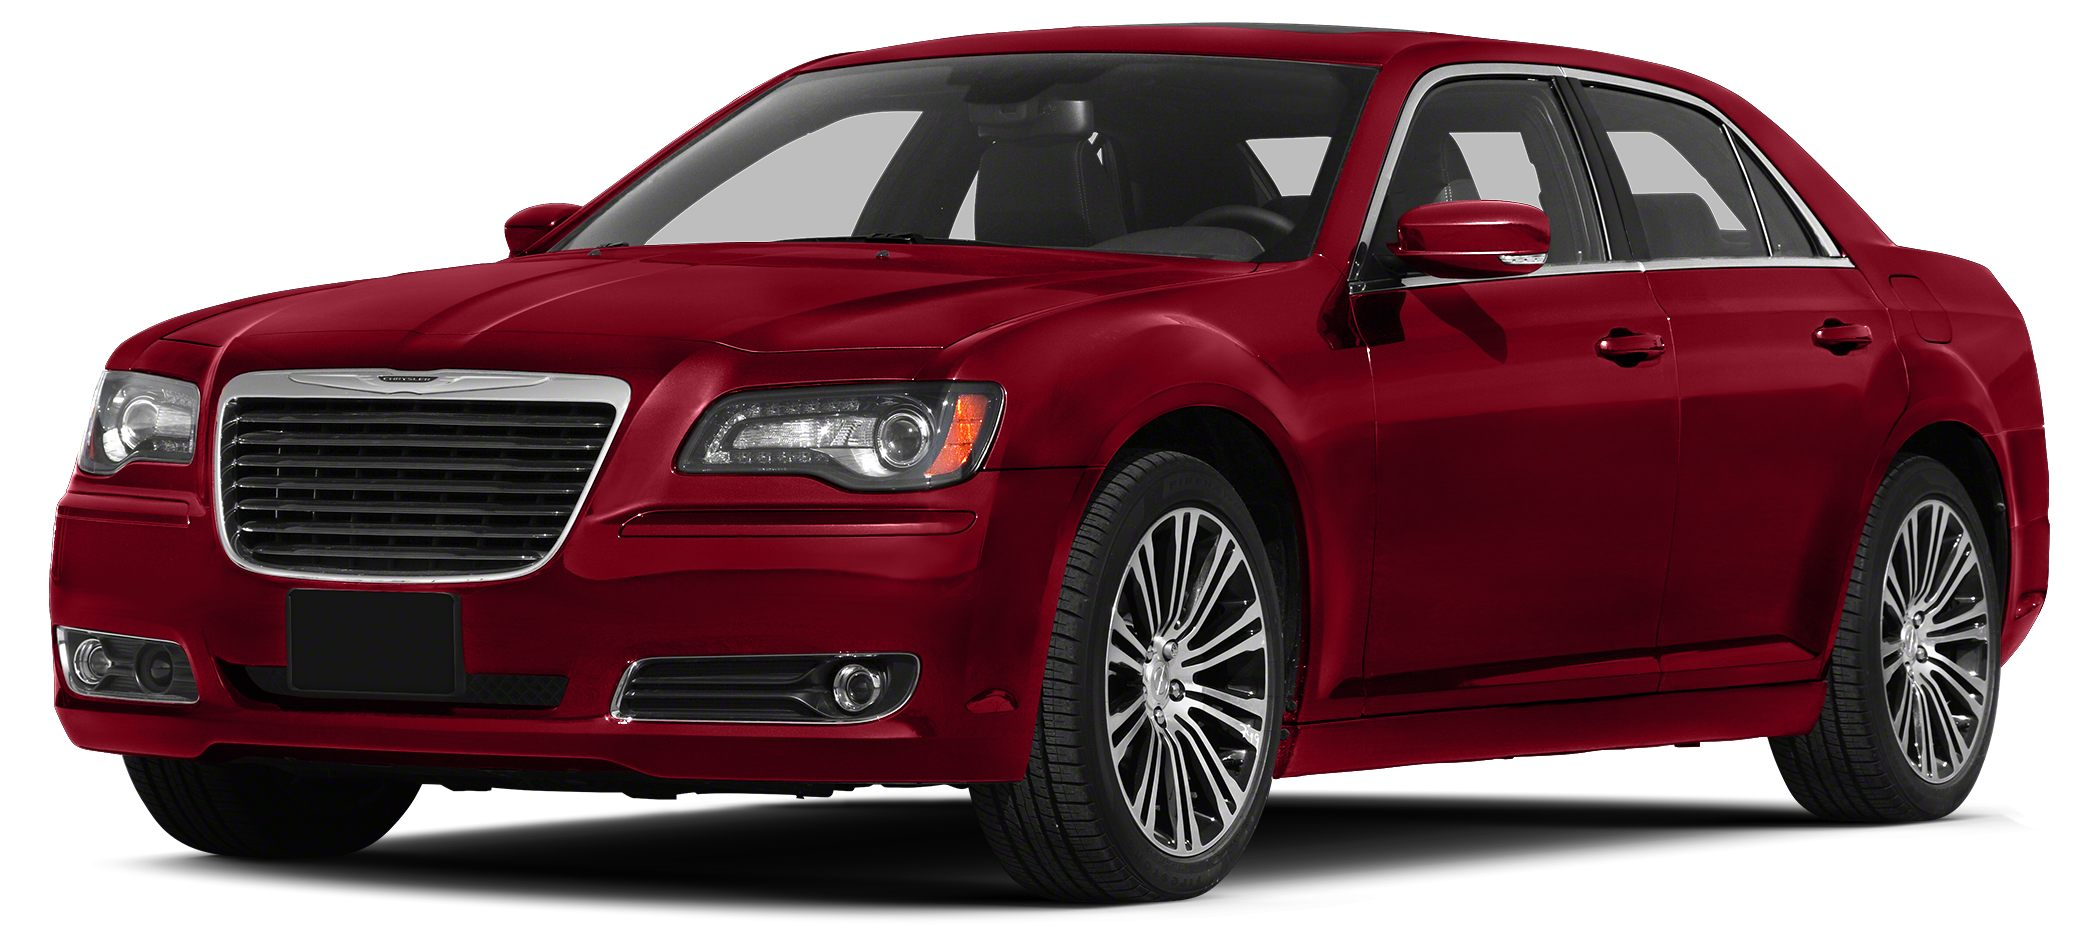 2013 Chrysler 300 S DISCLAIMER We are excited to offer this vehicle to you but it is currently in